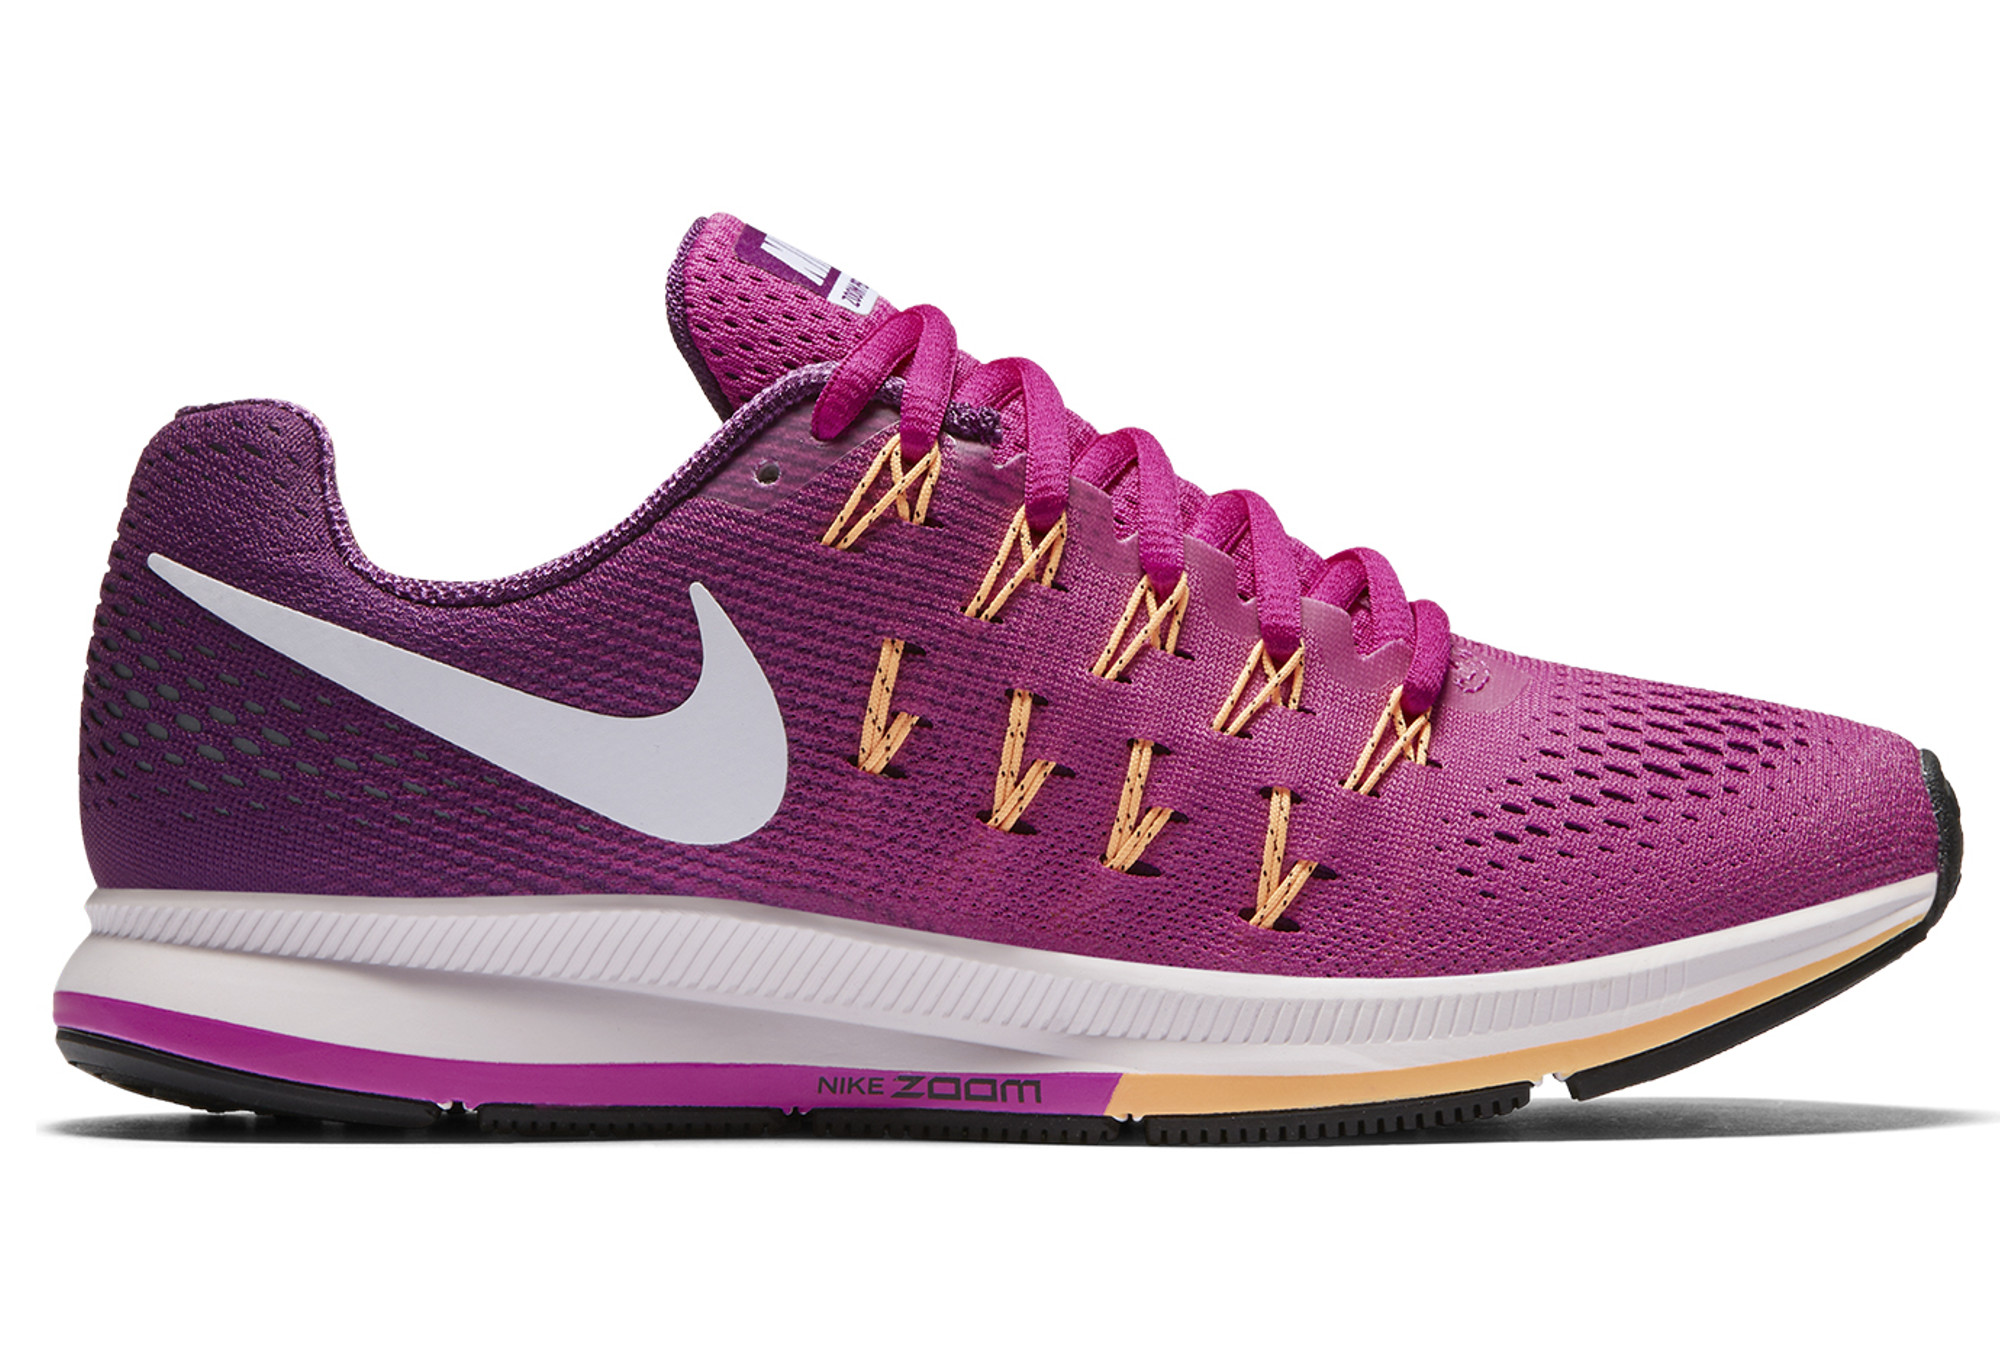 newest 11491 9781d Chaussures de Running Femme Nike AIR ZOOM PEGASUS 33 Rose